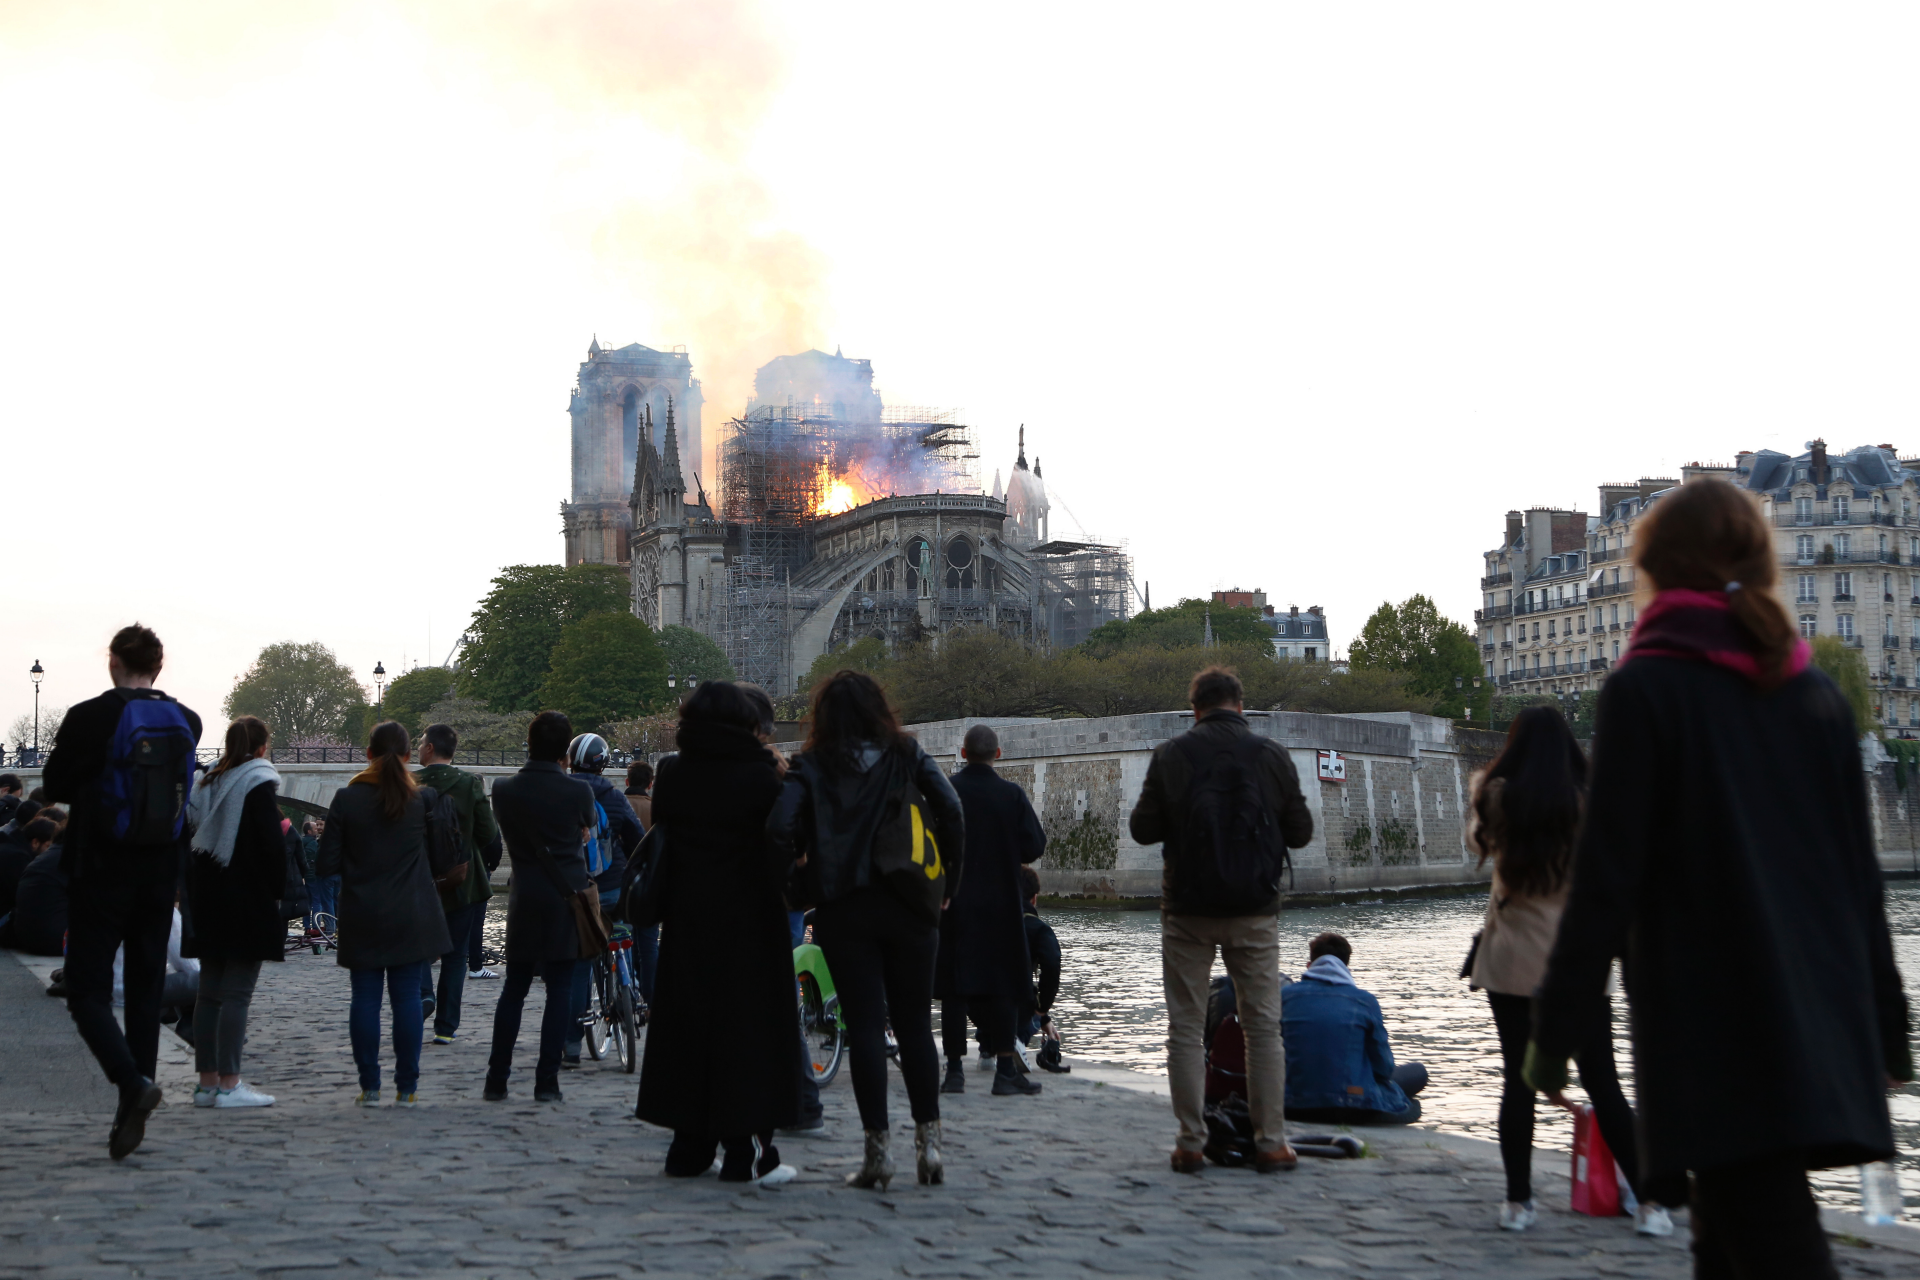 Westlake Legal Group ContentBroker_contentid-573d75e2ab27450d9853cfe0582712ae In the heart of Paris, watching a symbol of France burn LORI HINNANT fox-news/world/world-regions/europe fox-news/world fnc/world fnc Associated Press article 0838a423-9b22-5a7f-9158-54d32aff00a3